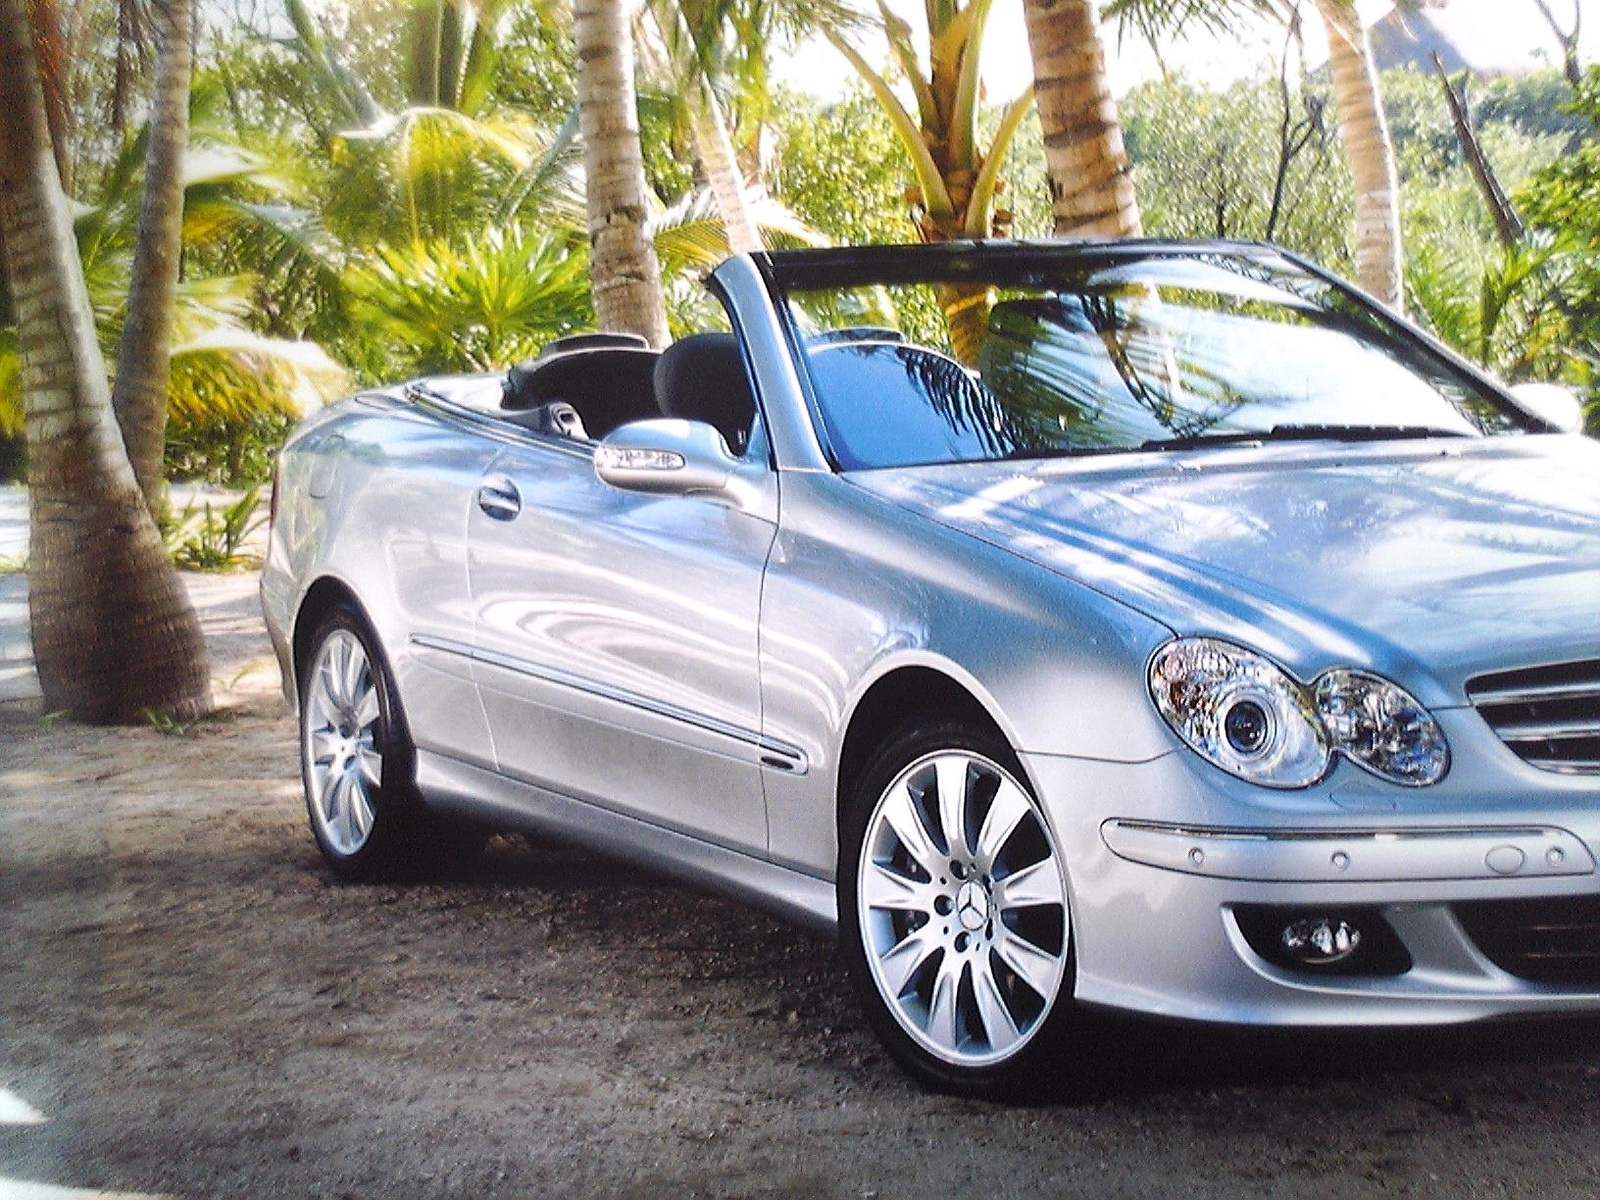 2005 mercedes benz clk class other pictures cargurus for Mercedes benz clk 2005